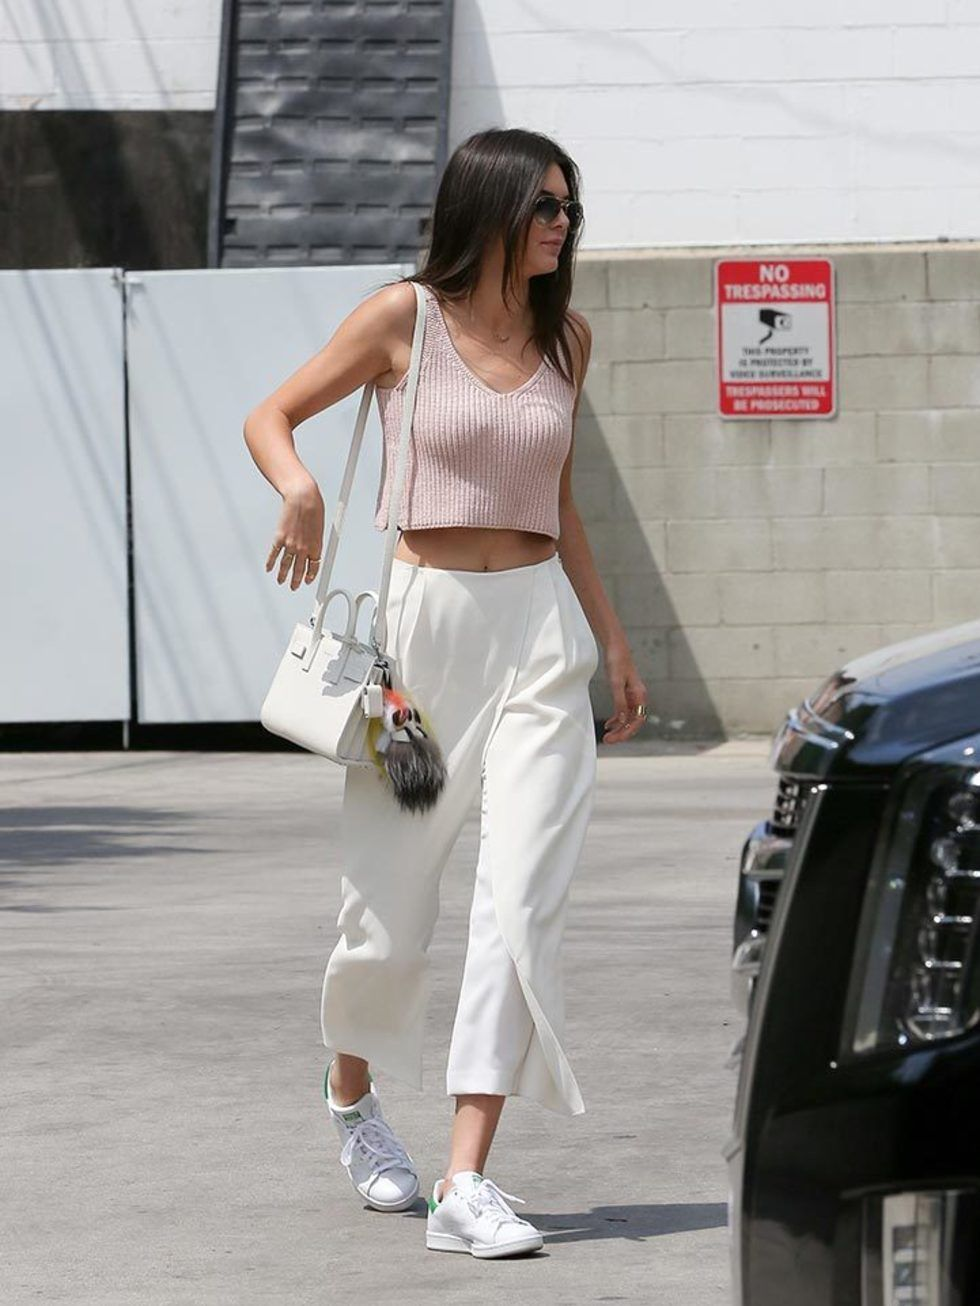 Image Result For Kendall Jenner Street Style